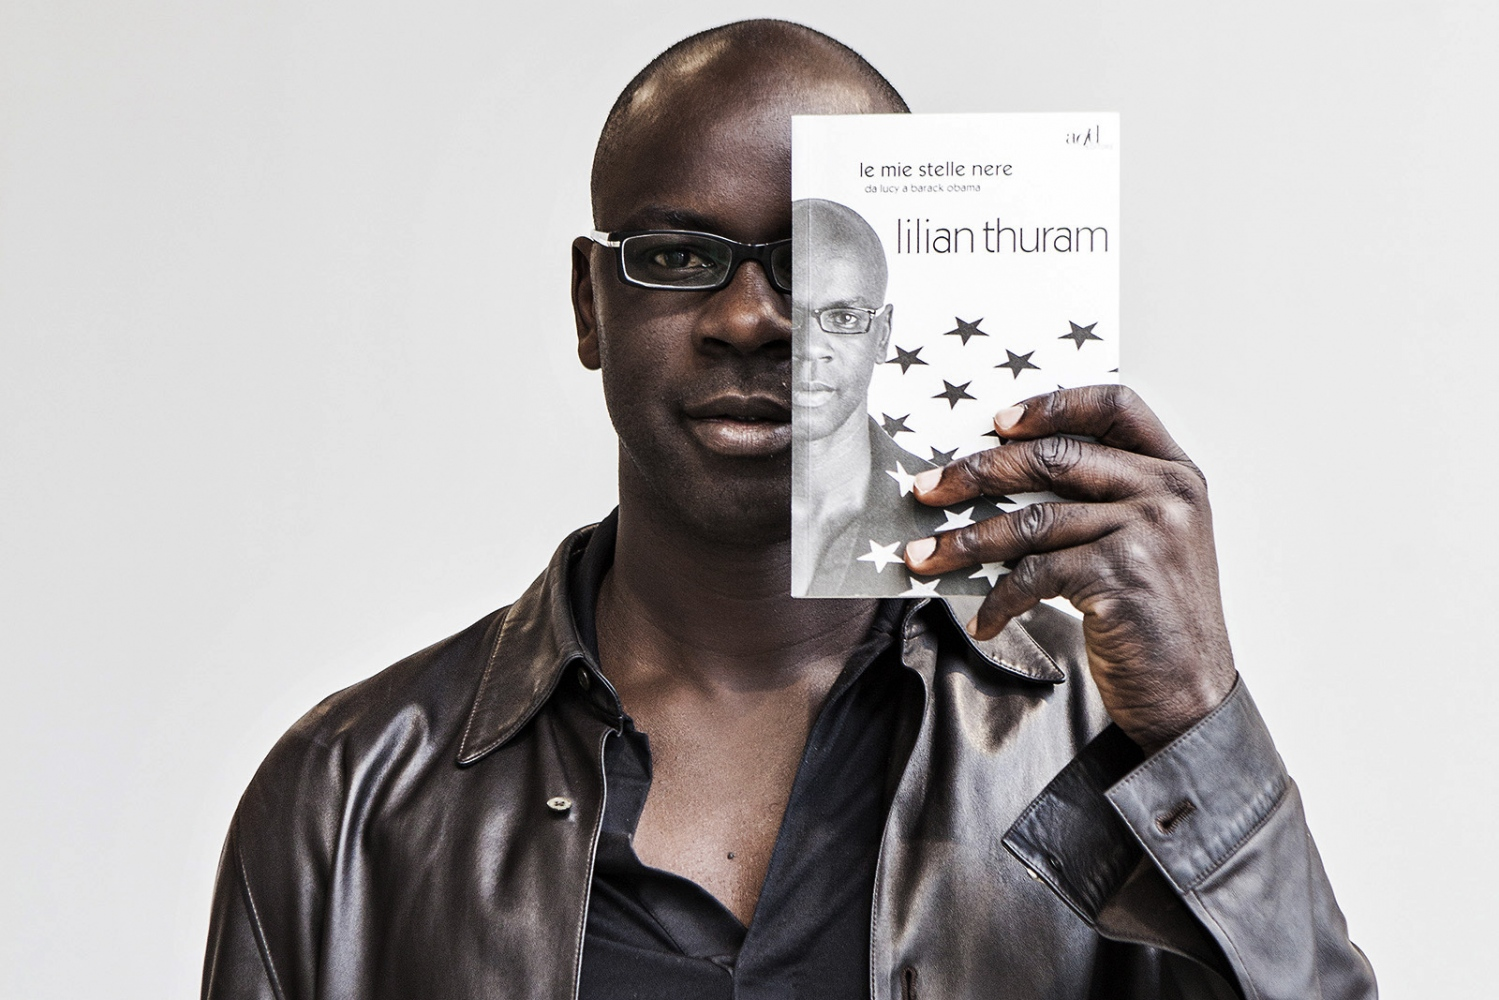 Lilian Thuram, among the best football players in the world, wrote a book in 2013